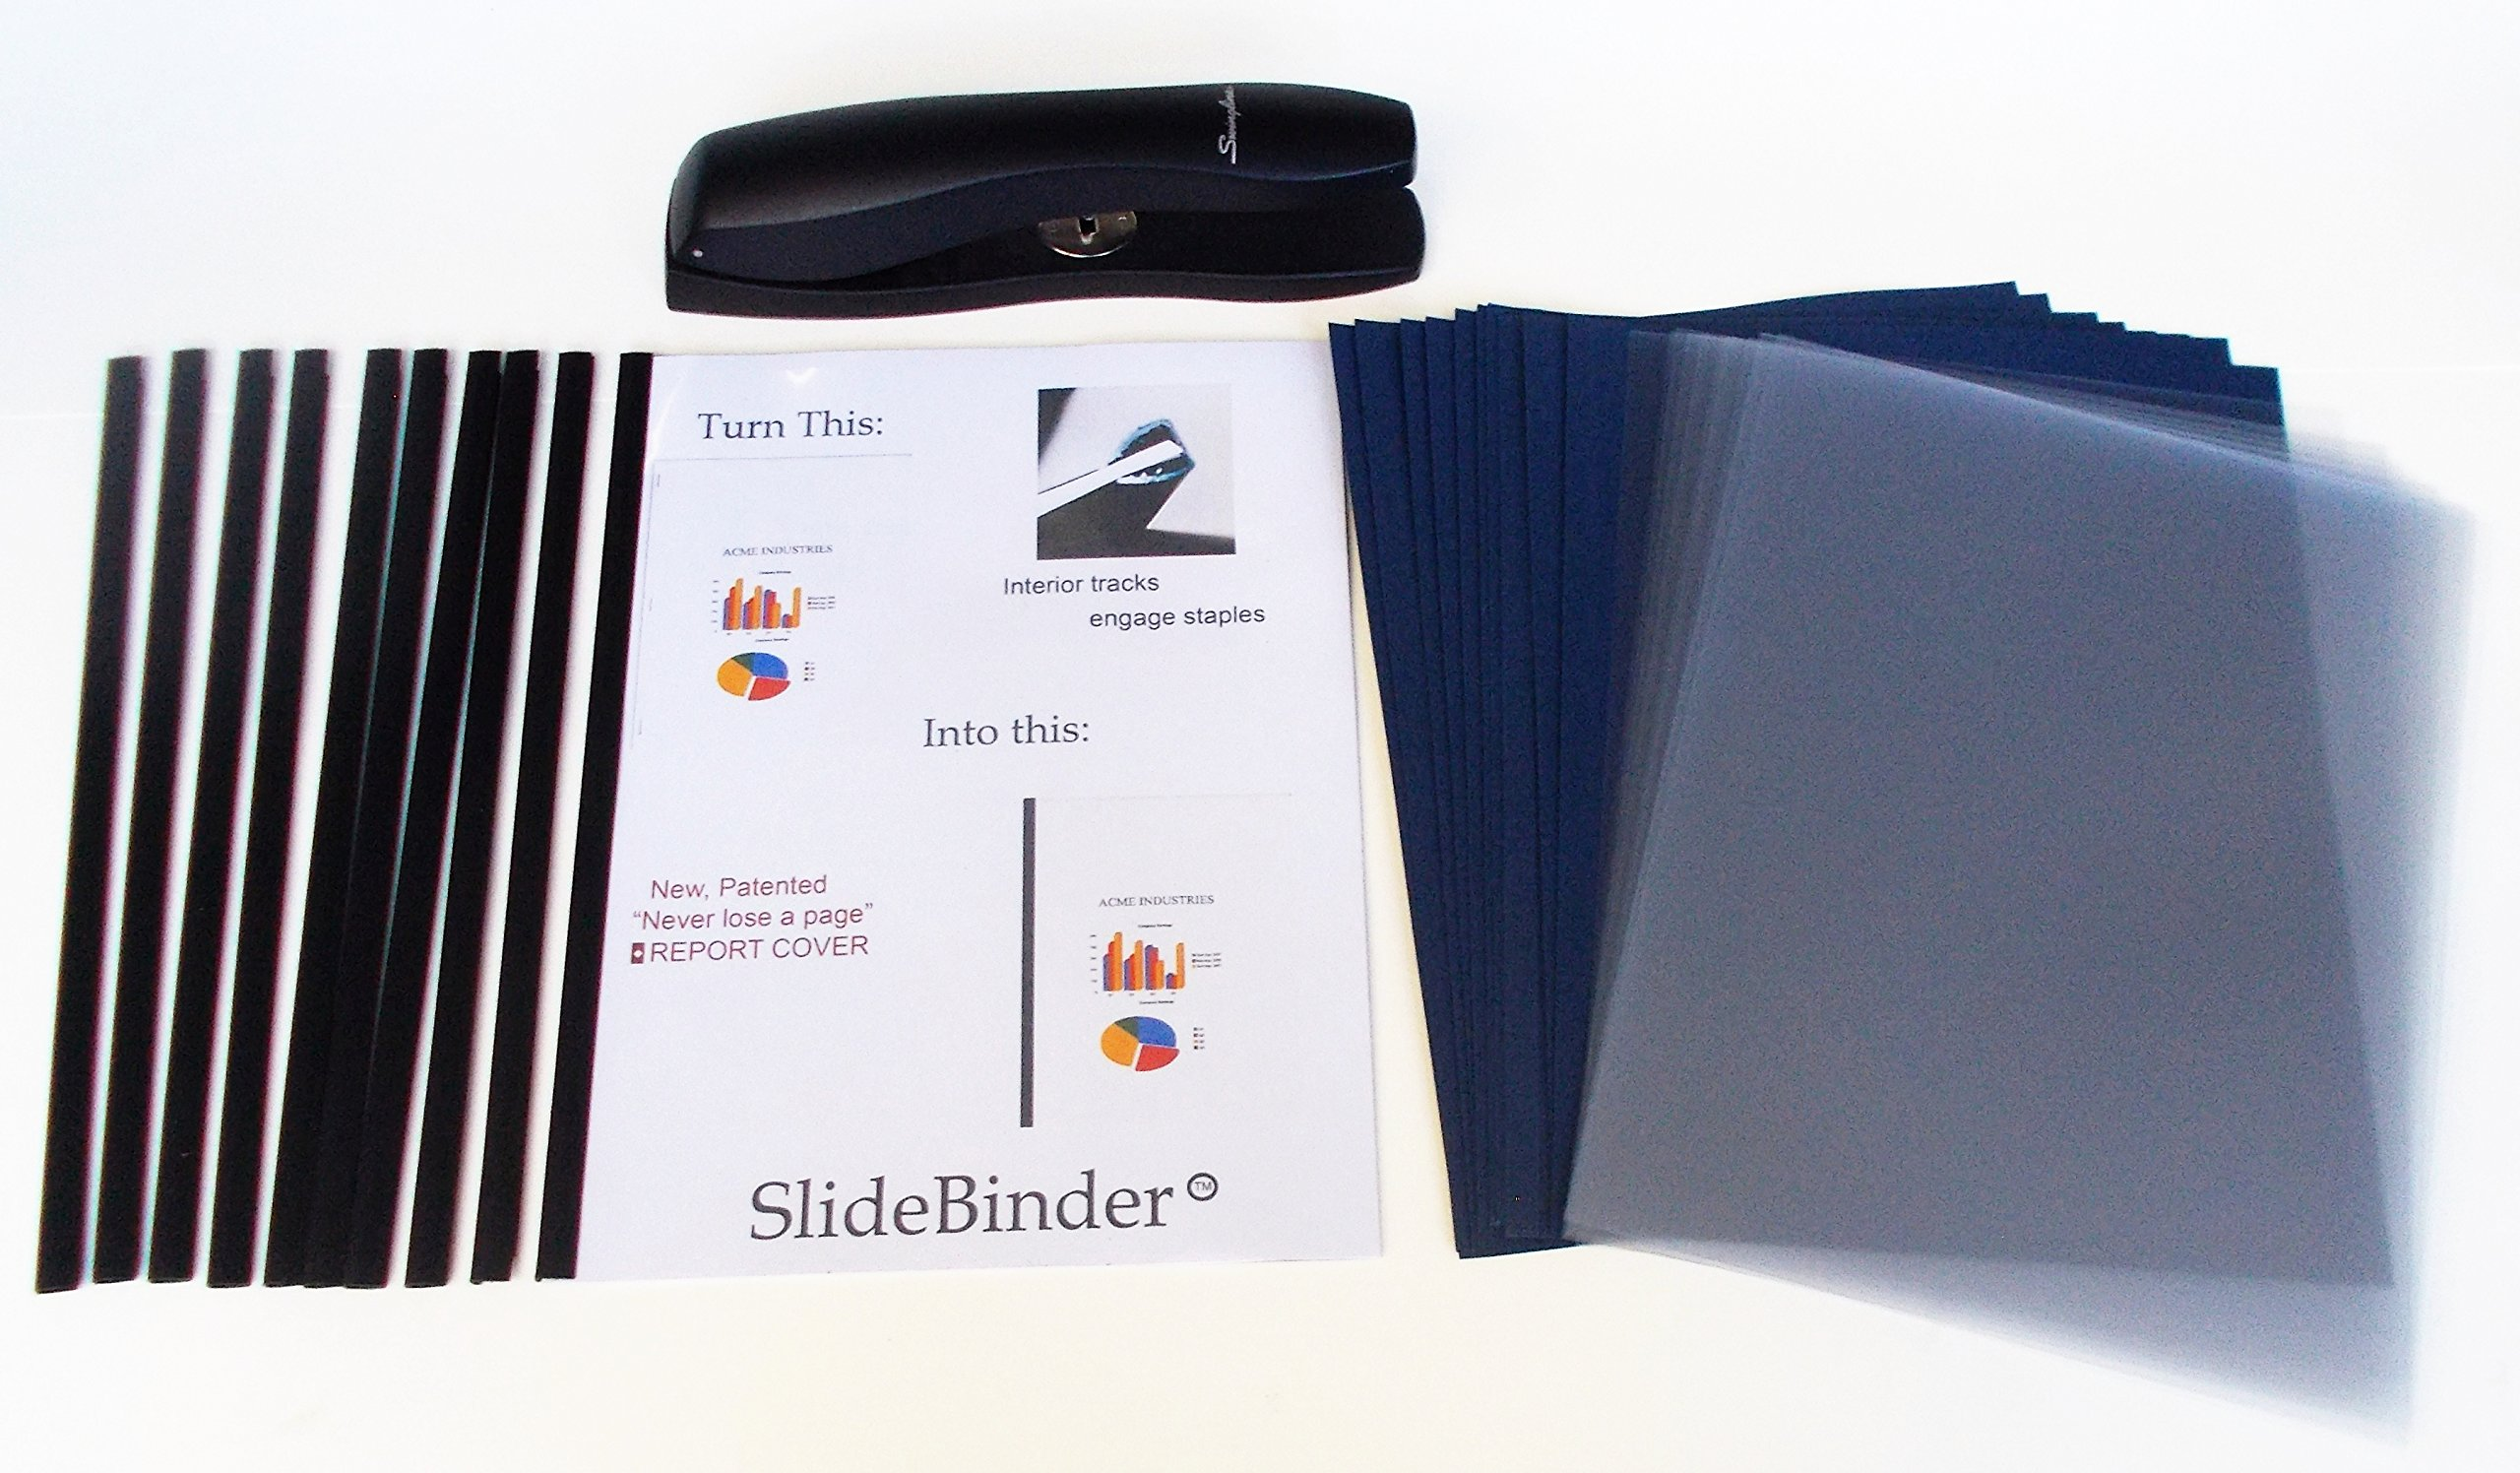 Newly Patented Premium SlideBinder tm Binding Bars with cCLEAR FRONT and NAVY LINEN cardstock back covers. Staple, slide, and never lose a page! SMALL SIZE for 1-12 sheets of 20lb paper (10 SETS)